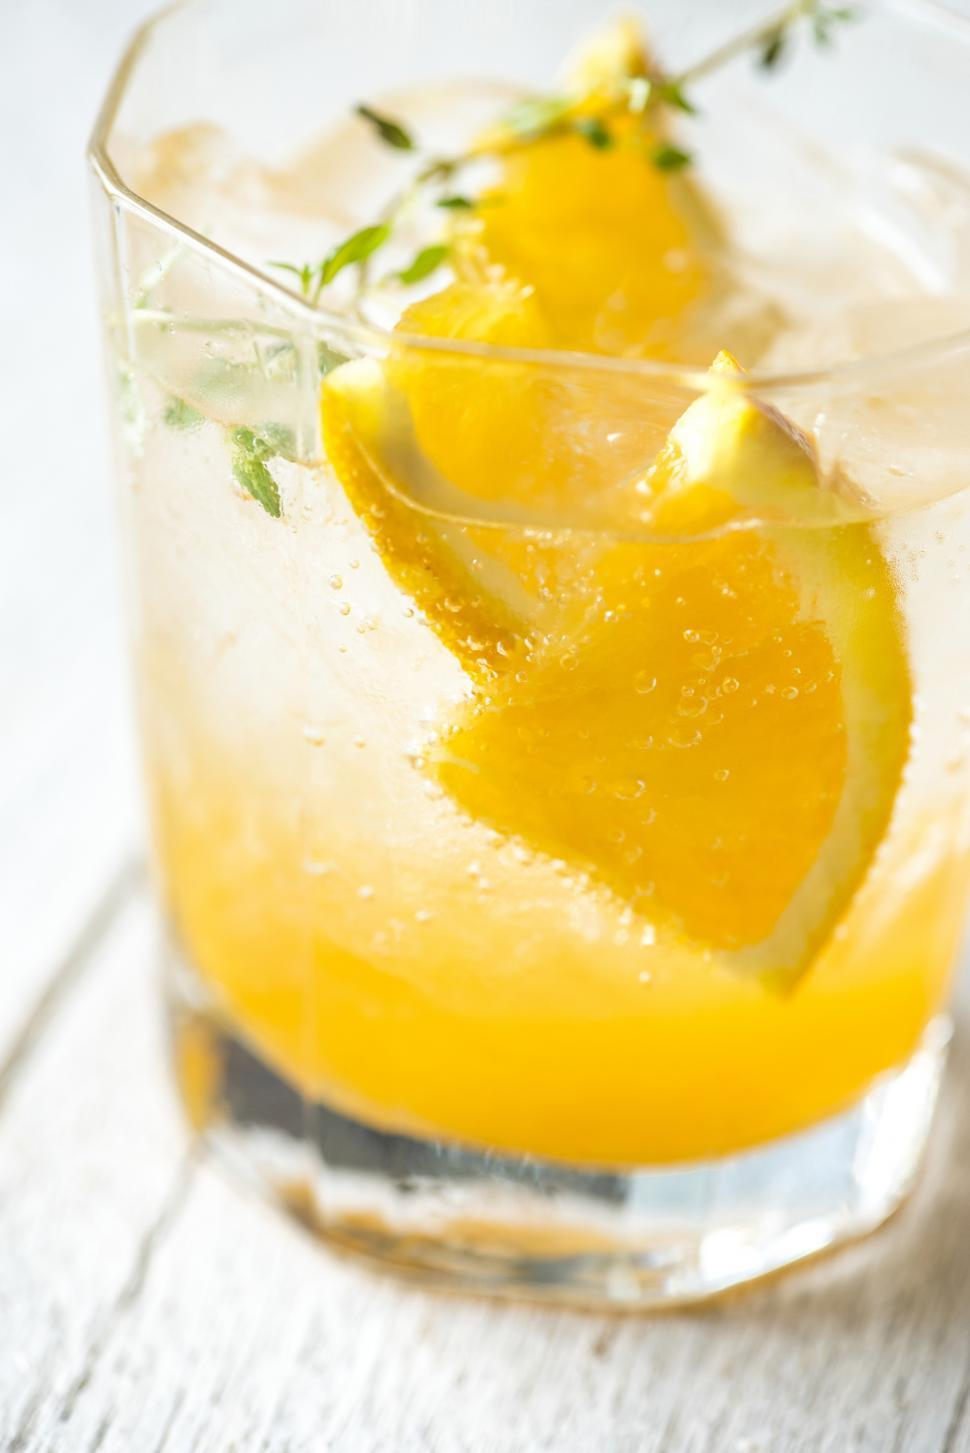 Download Free Stock Photo of Close up of fresh beverage in a glass garnished with orange slices